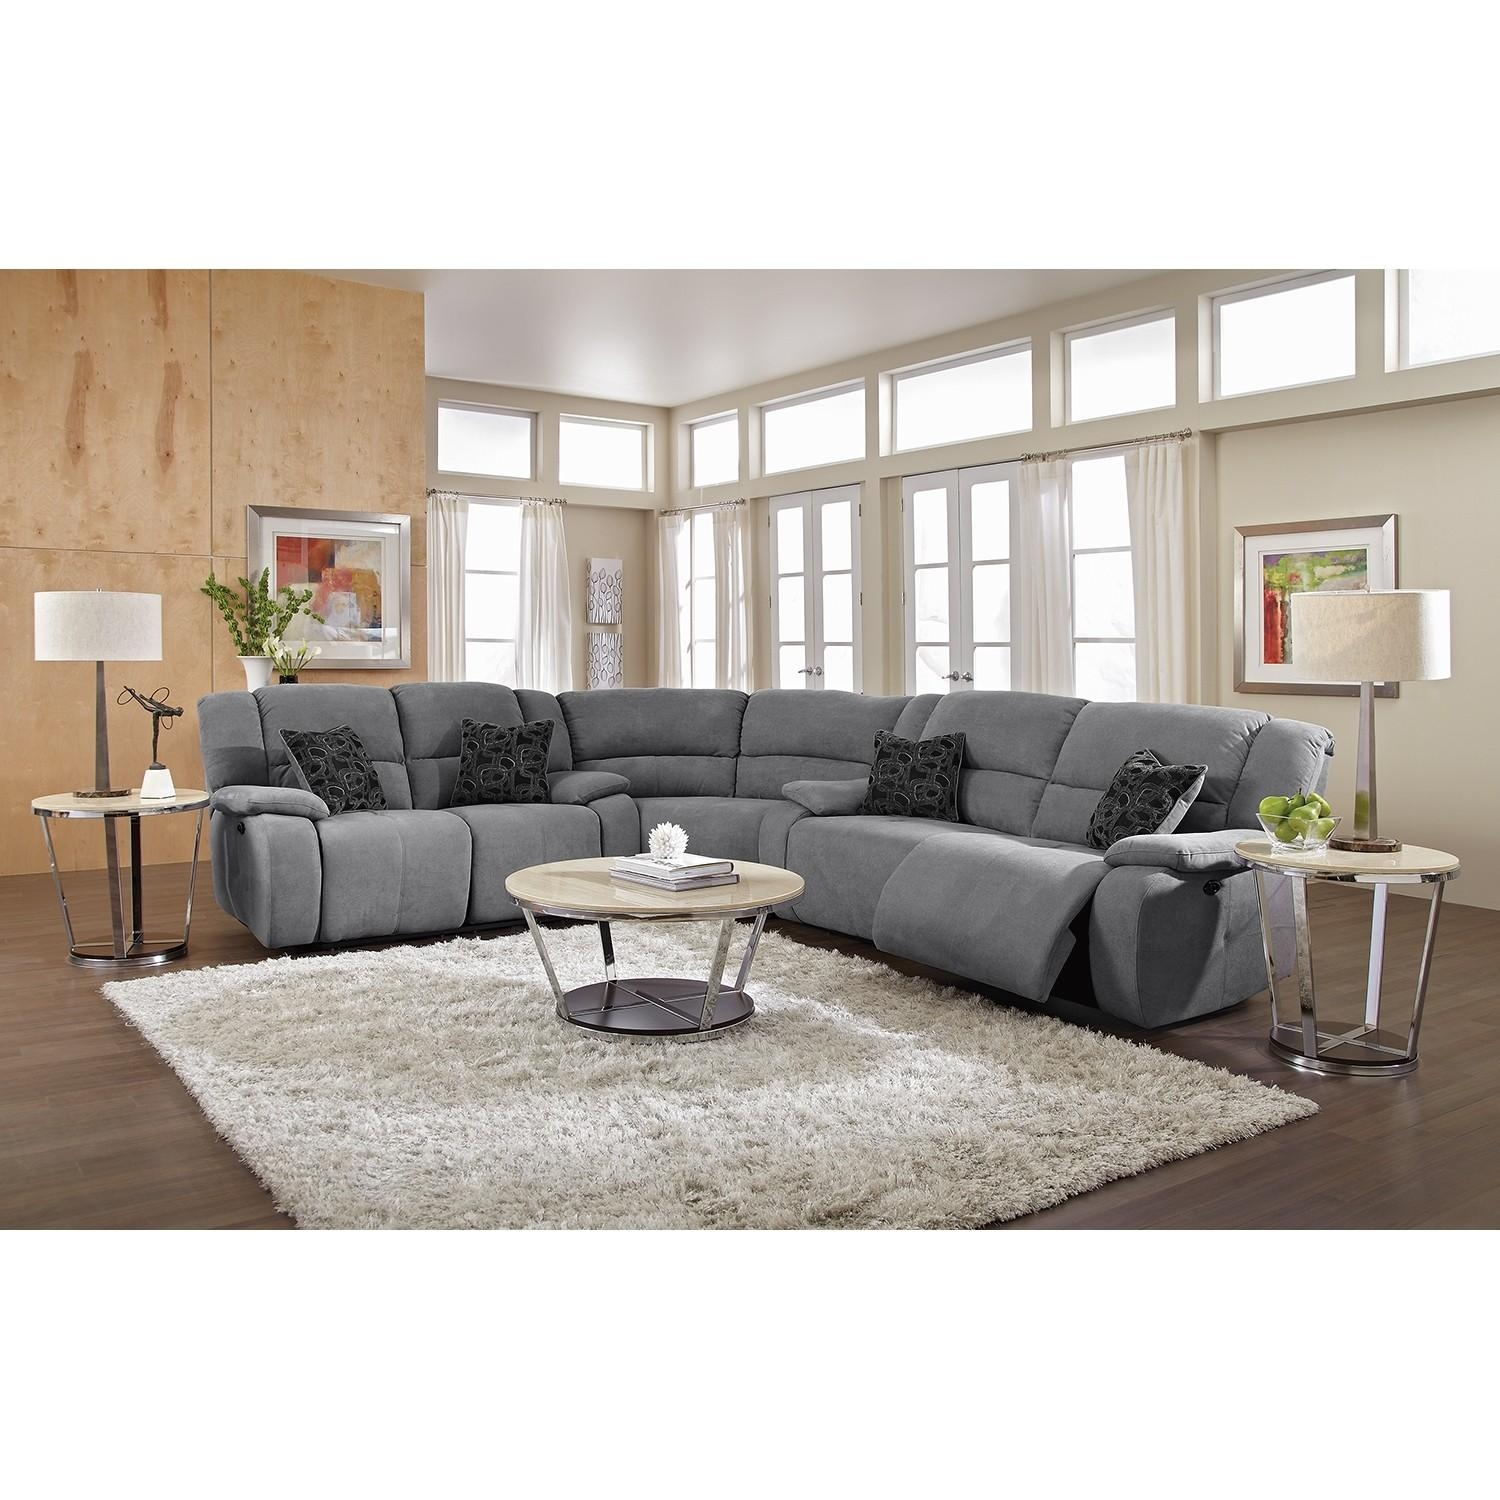 21 Ideas Of Gray Leather Sectional Sofas Sofa Ideas